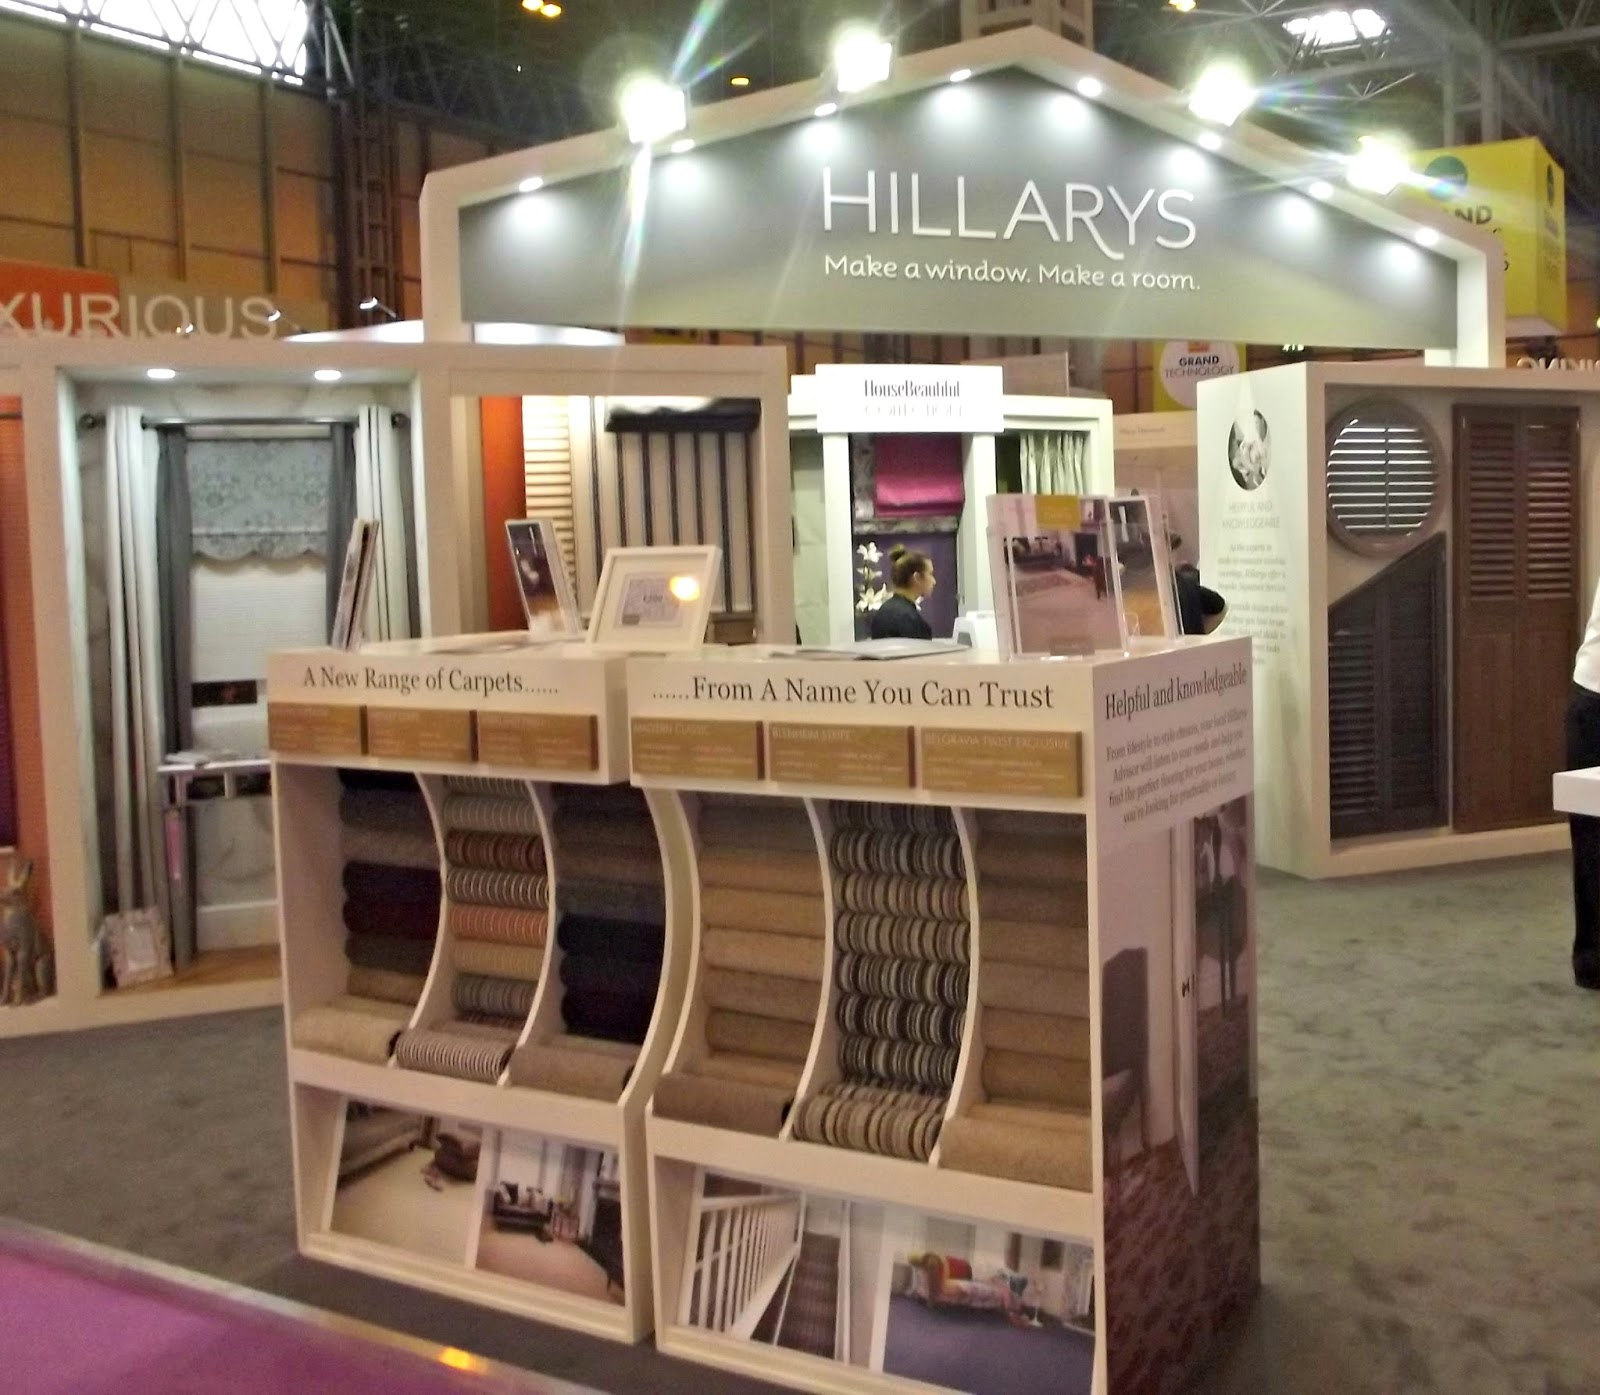 Hillarys blinds archives raisie bay i am looking for blinds and curtains and they had a lovely display of what they can offer it was nice to be able to walk around and have a feel of the solutioingenieria Images